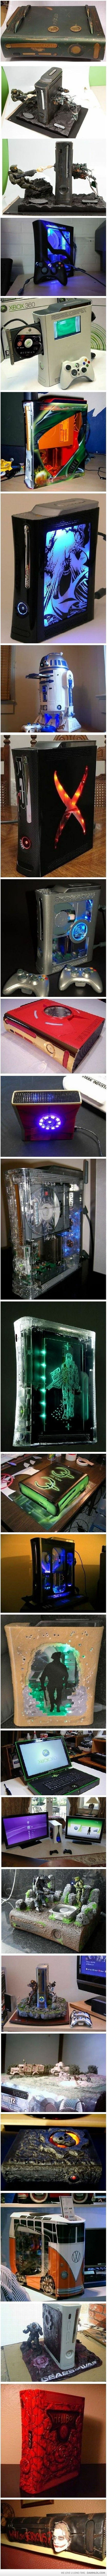 Awesome Xbox Mods -- not really a fan of xbox, but awesome inspiration regardless